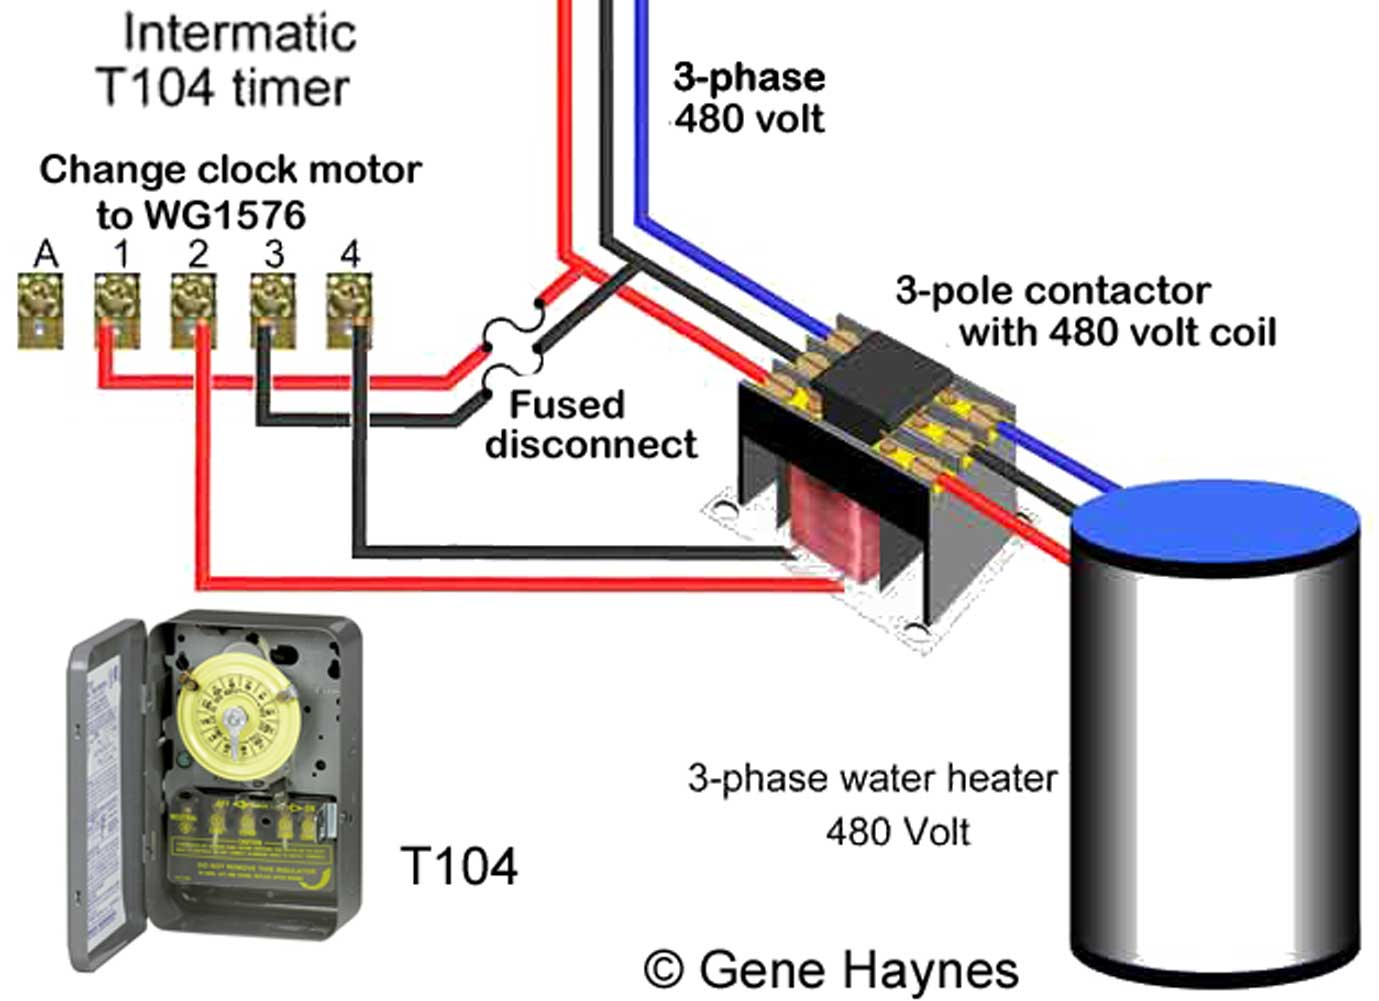 How To Wire Intermatic T104 And T103 T101 Timers Wiring Diagram Of Electronic Clock 480volt Timer Control 480 V 3 Phase Using Change 240v Wg1573 Motor Wg1576